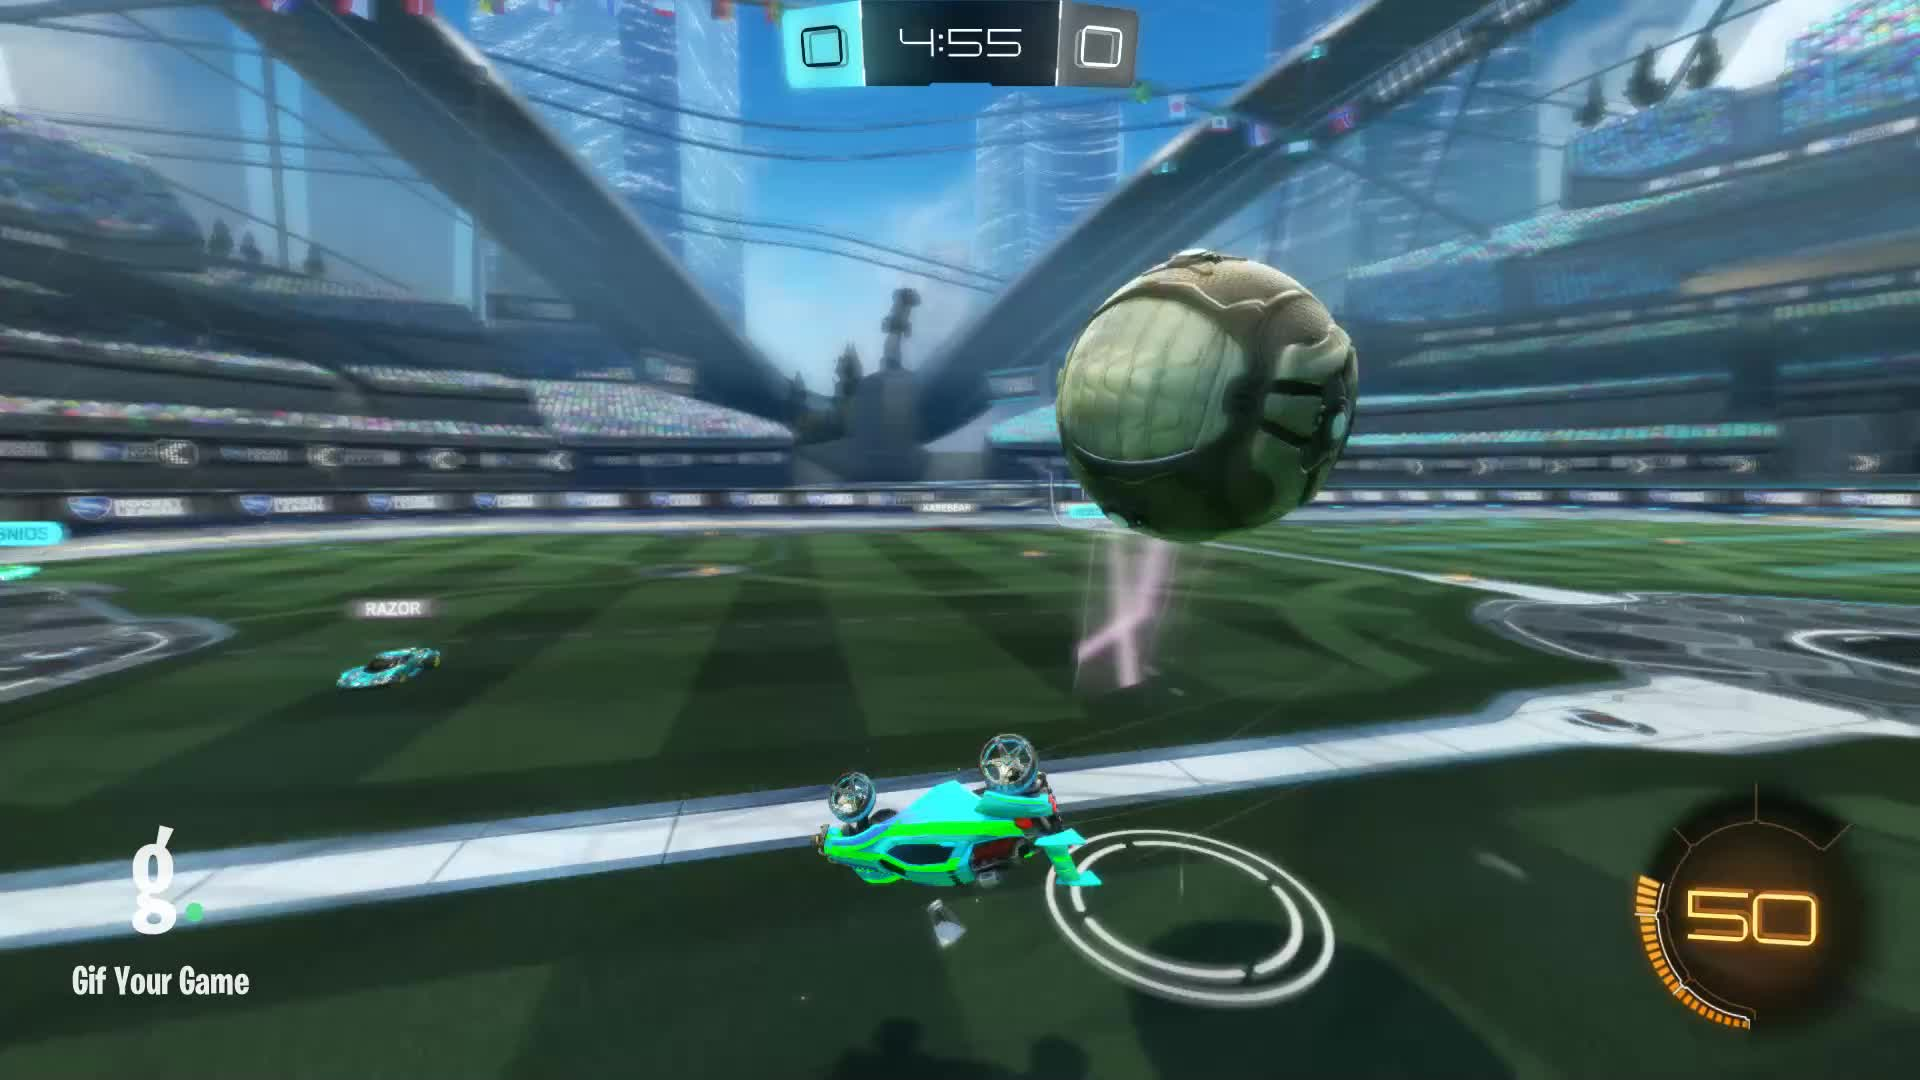 Gif Your Game, GifYourGame, Goal, Rocket League, RocketLeague, justintime151, Goal 1: justintime151 GIFs